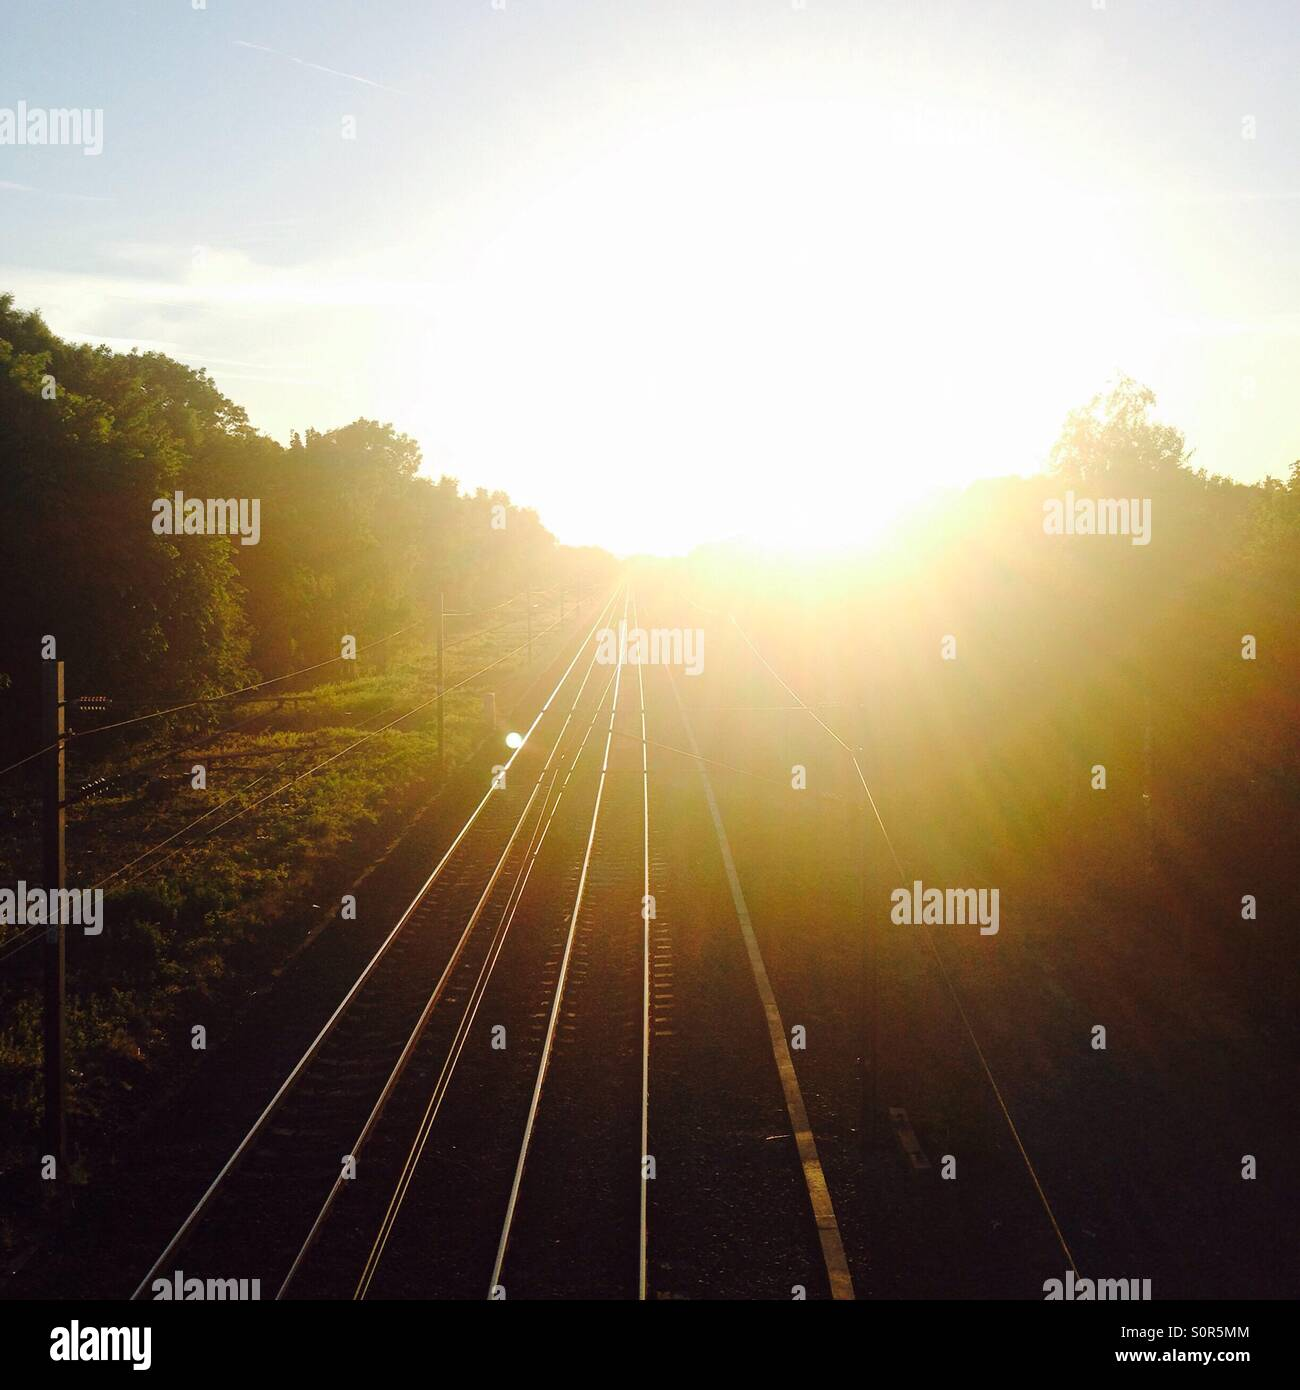 Train lines in right sunlight - Stock Image